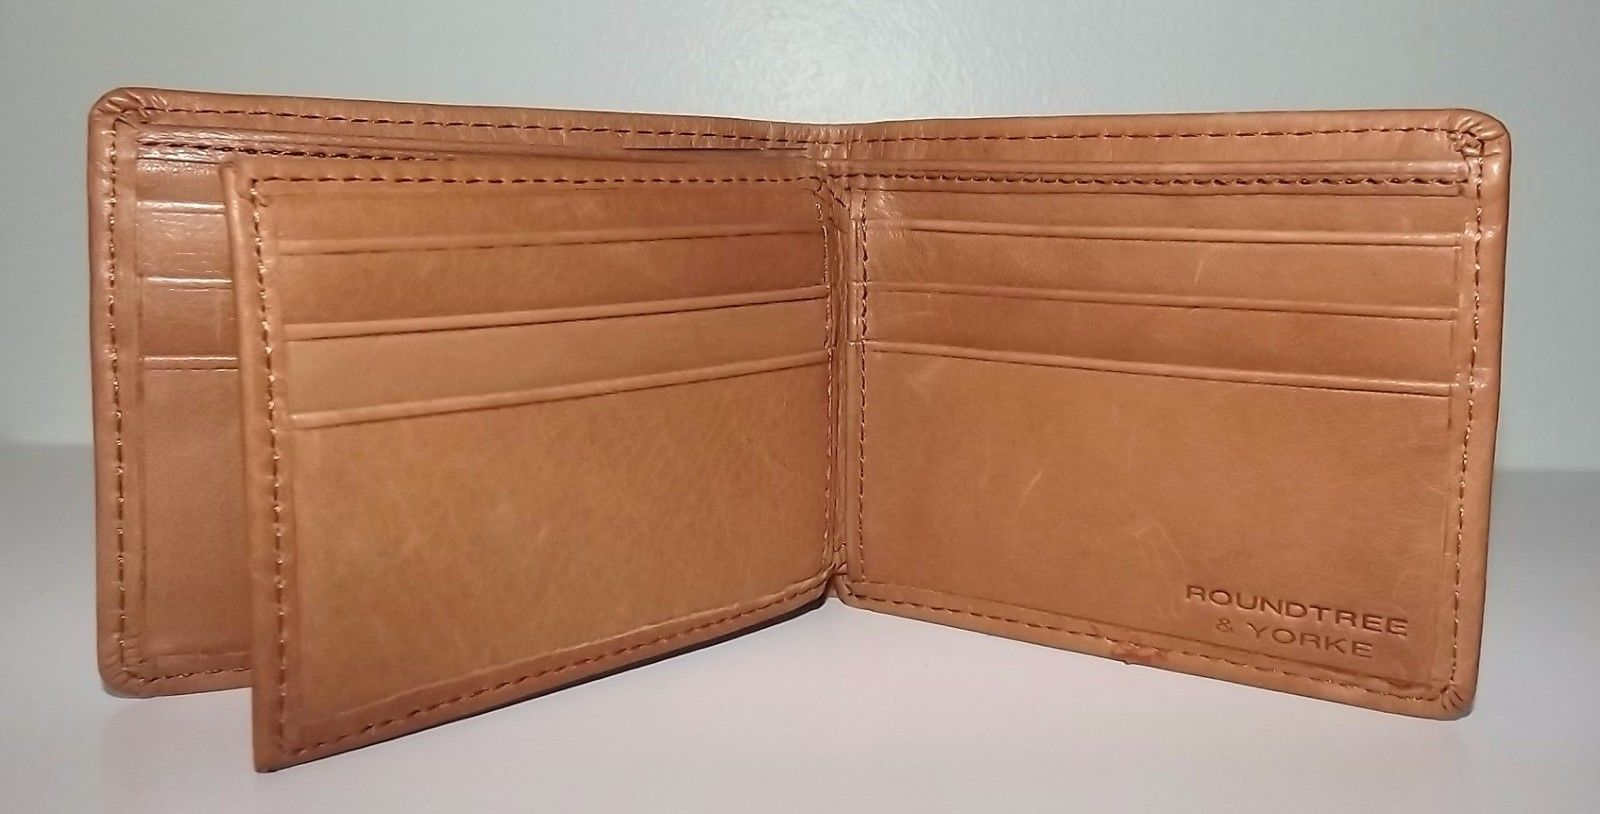 90a179212c93 New Roundtree & Yorke Men's Leather Rfid and 50 similar items